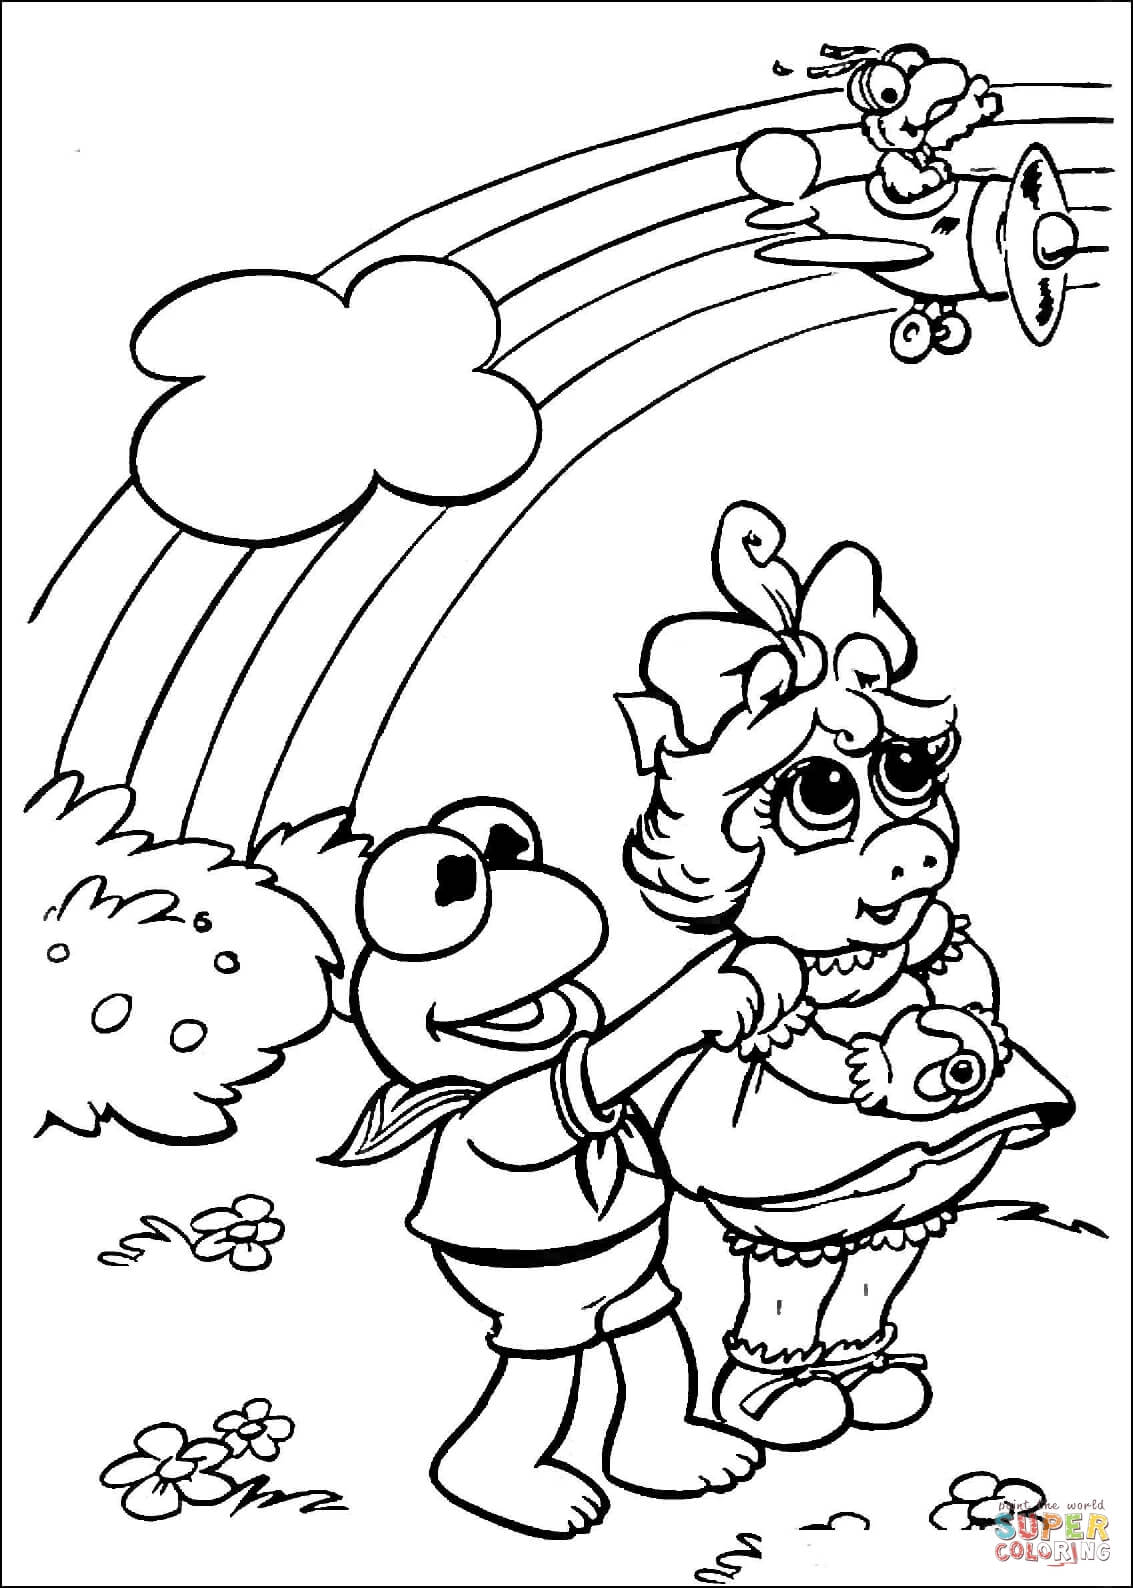 miss piggy coloring pages miss piggy free colouring pages miss coloring piggy pages